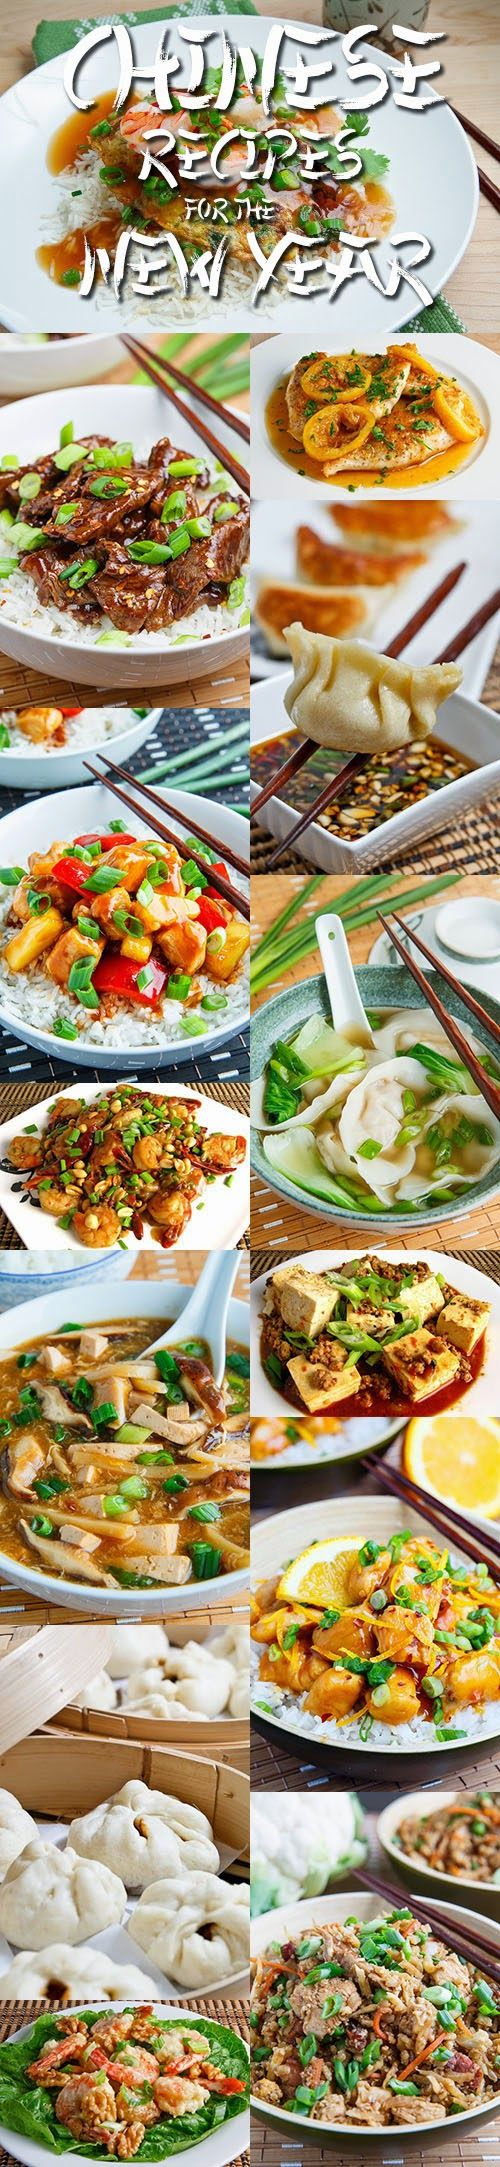 Chinese Recipes for the New Year {Closet Cooking}